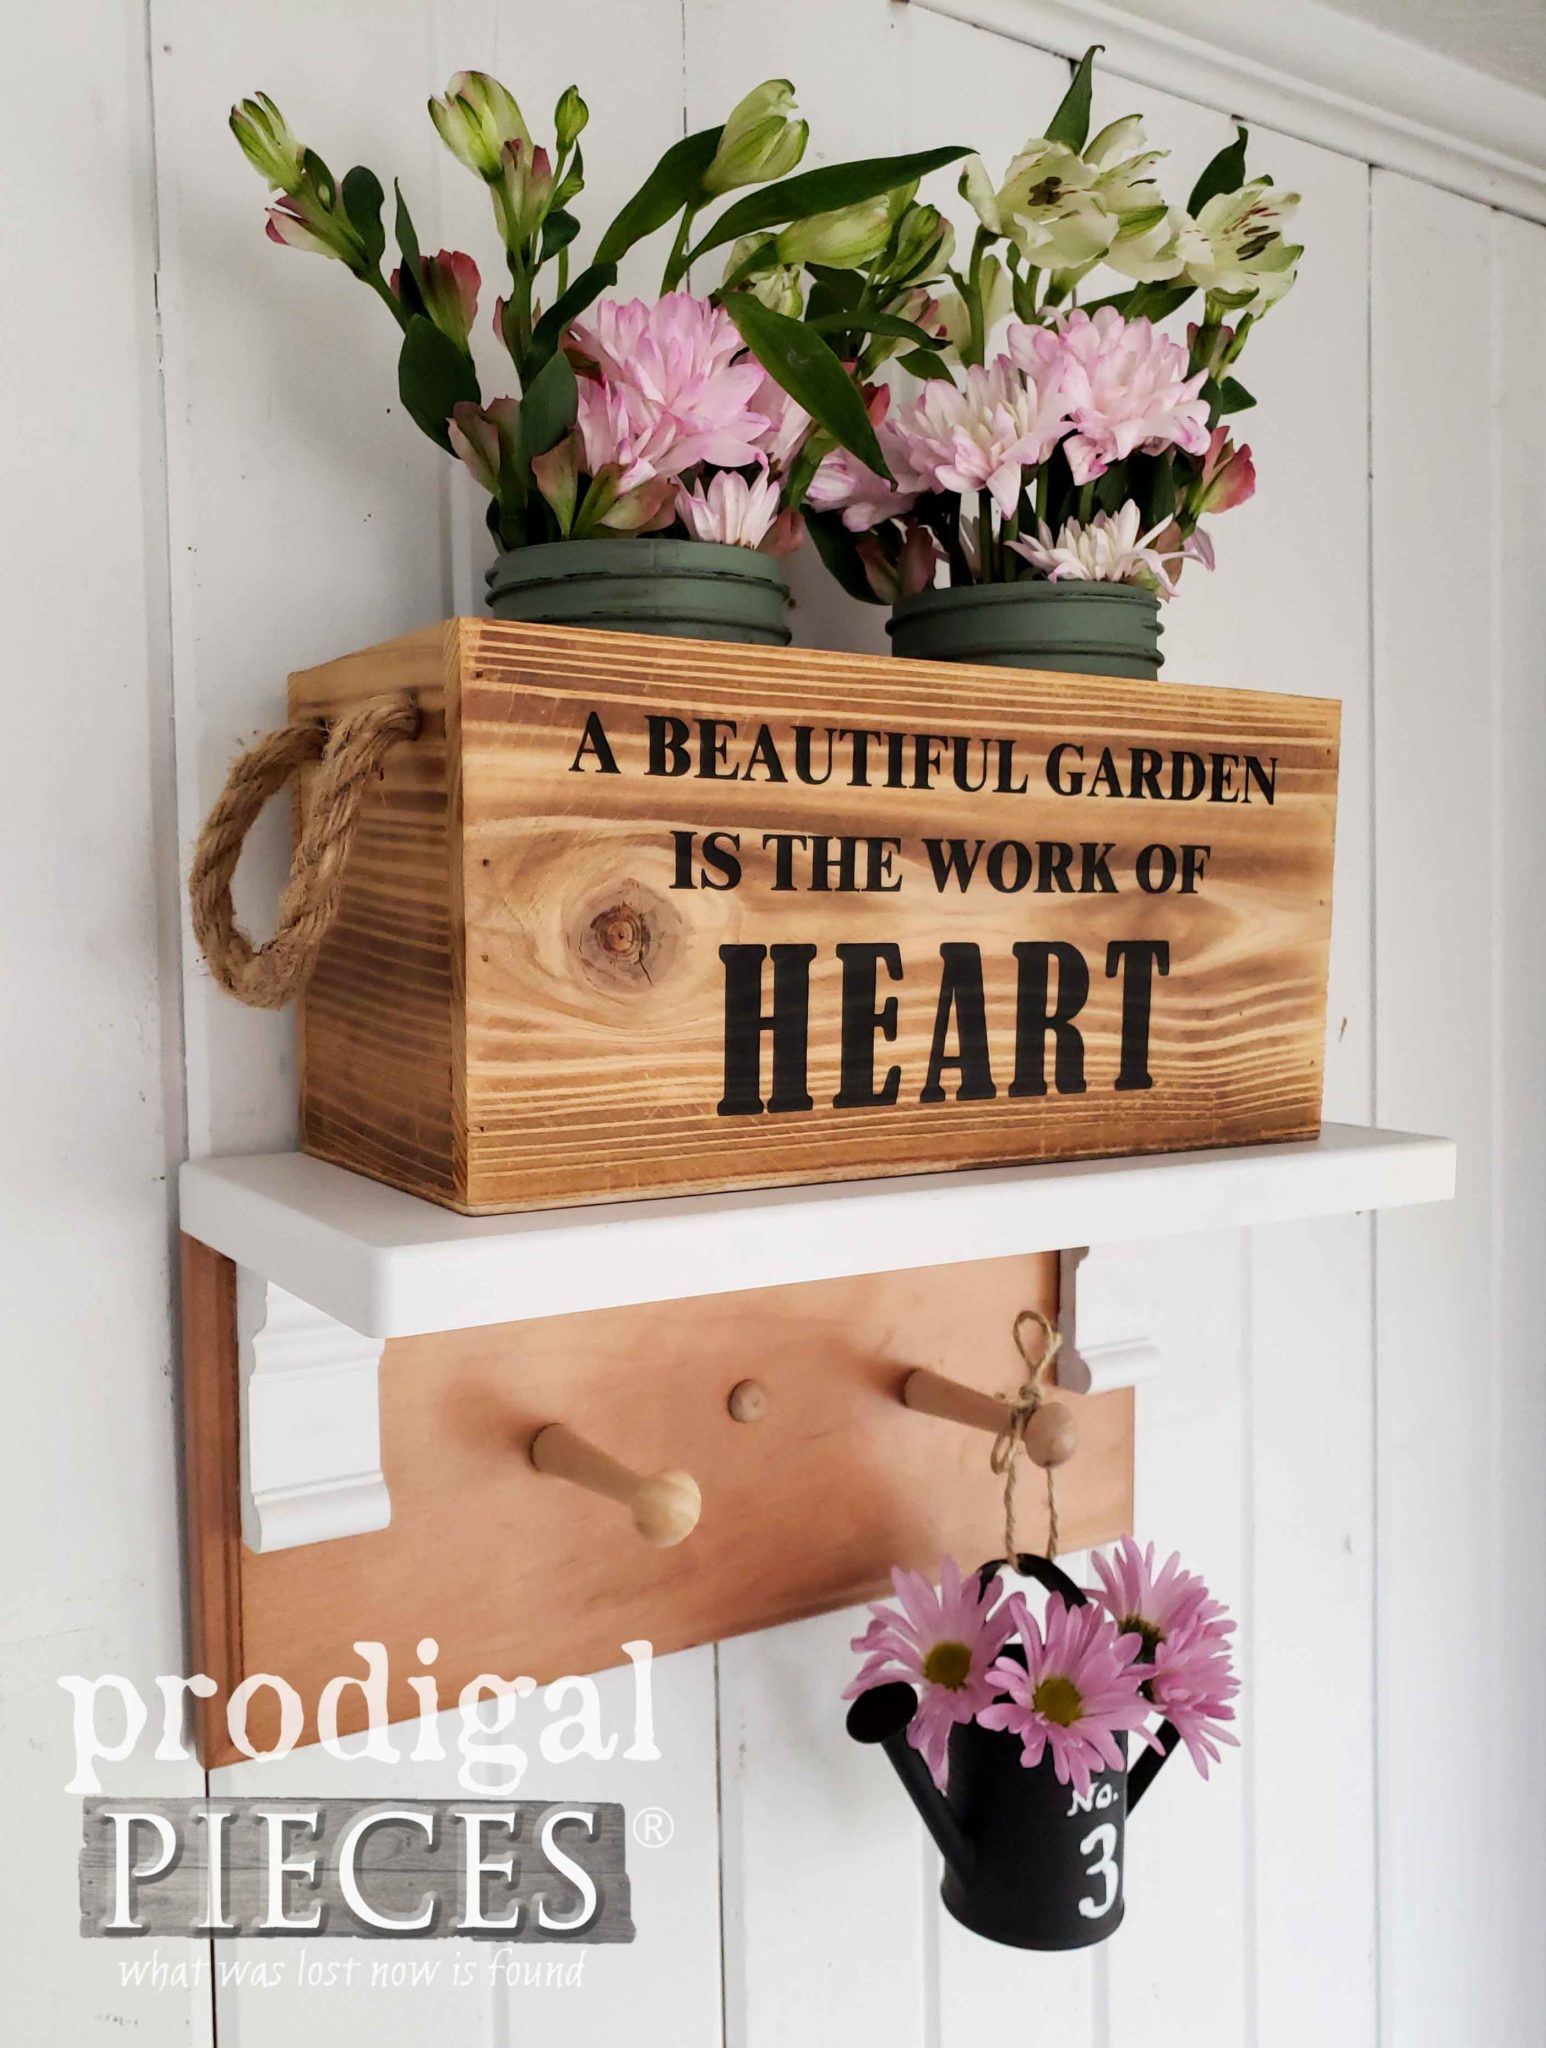 Vintage Style Coat Rack Shelf with Garden Fun by Larissa of Prodigal Pieces | prodigalpieces.com #prodigalpieces #farmhouse #garden #home #diy #homedecor #homedecorideas